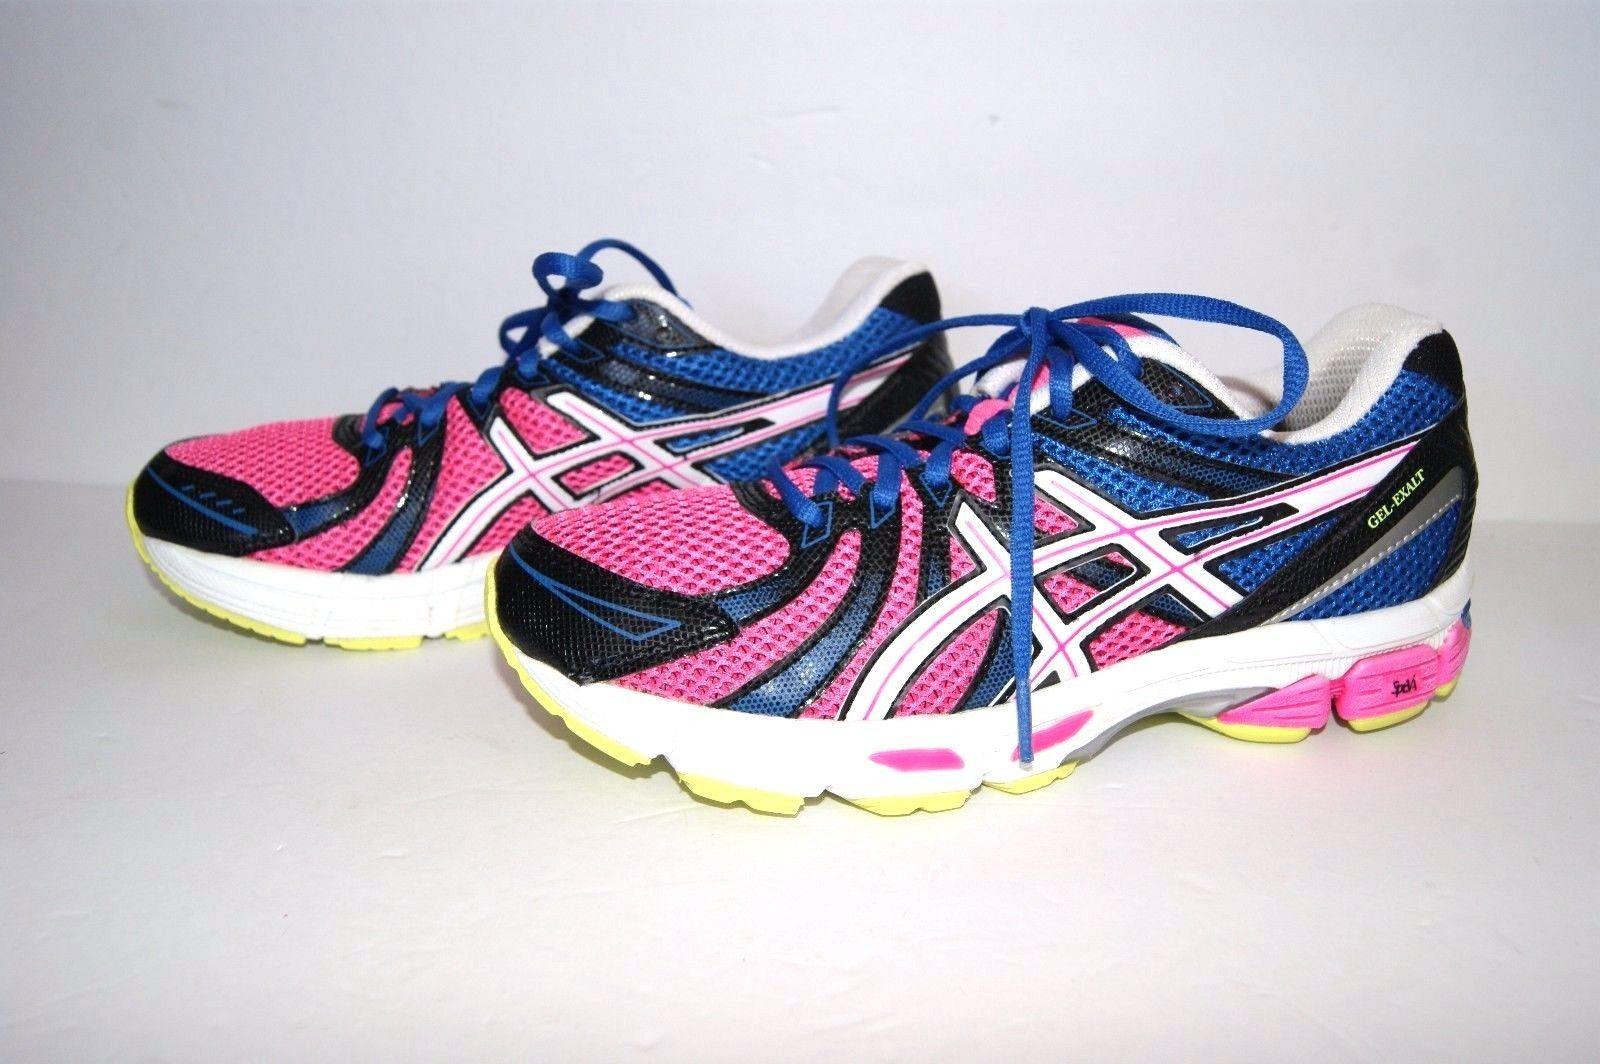 457420422e6 57. 57. Previous. Asics Oasis Duomax Gel Exalt Blue Pink US 7.5 Athletic  Running Tennis Shoes